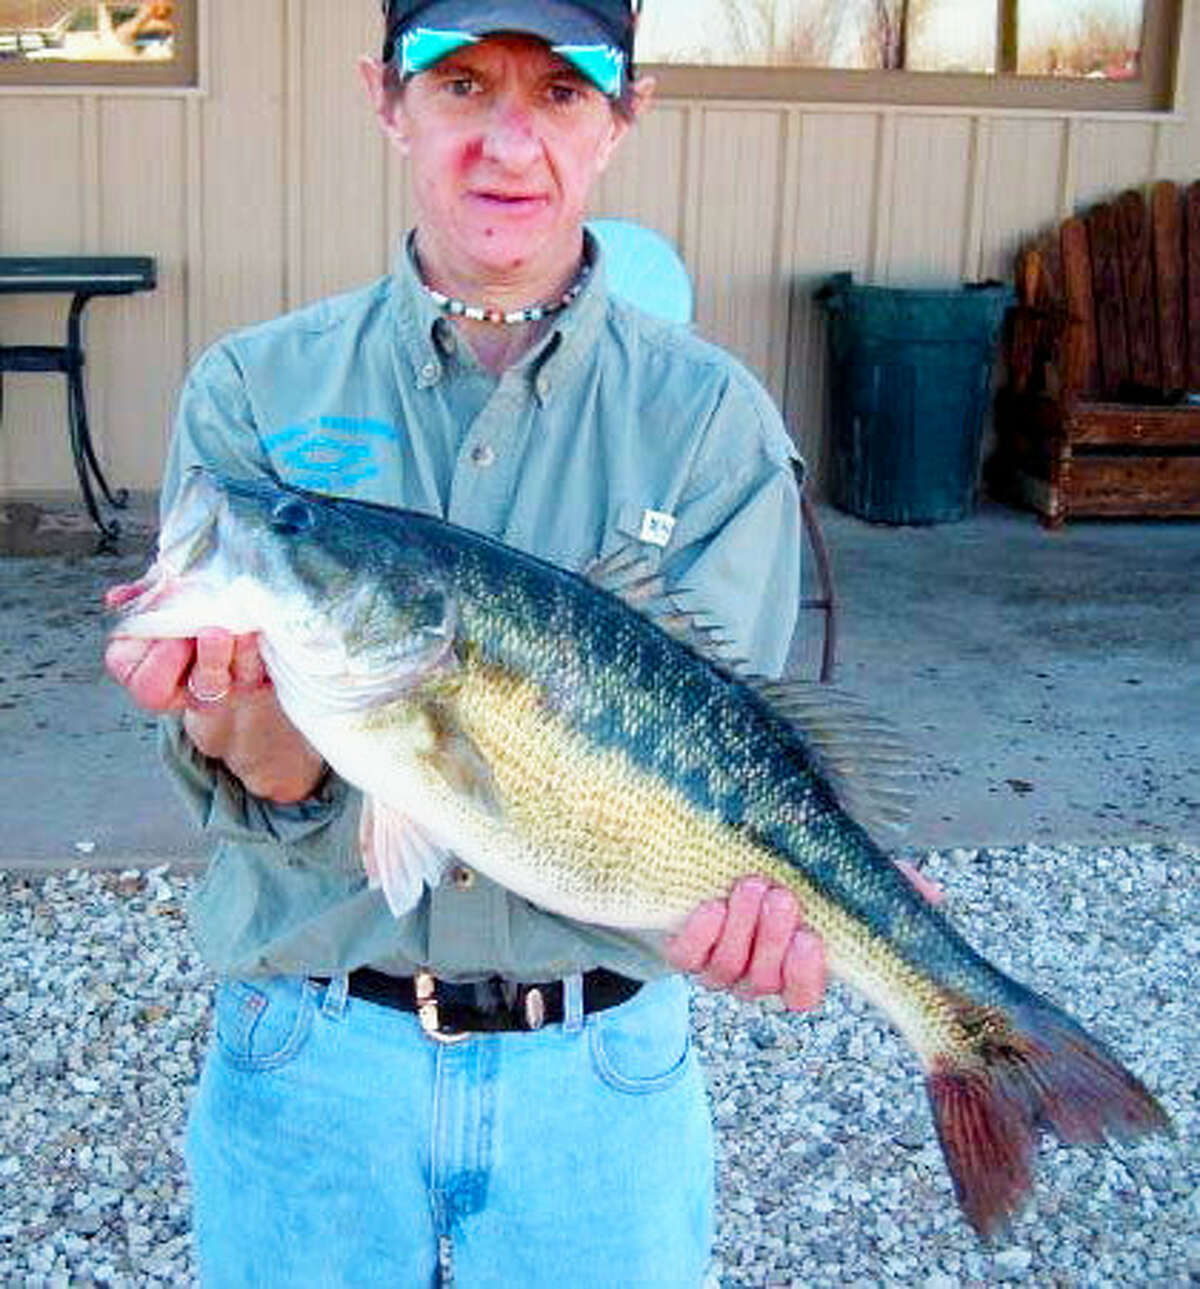 Lake Alan Henry is the only Texas lake holding Alabama bass, which until 2011 was considered a Kentucky spotted bass subspecies.